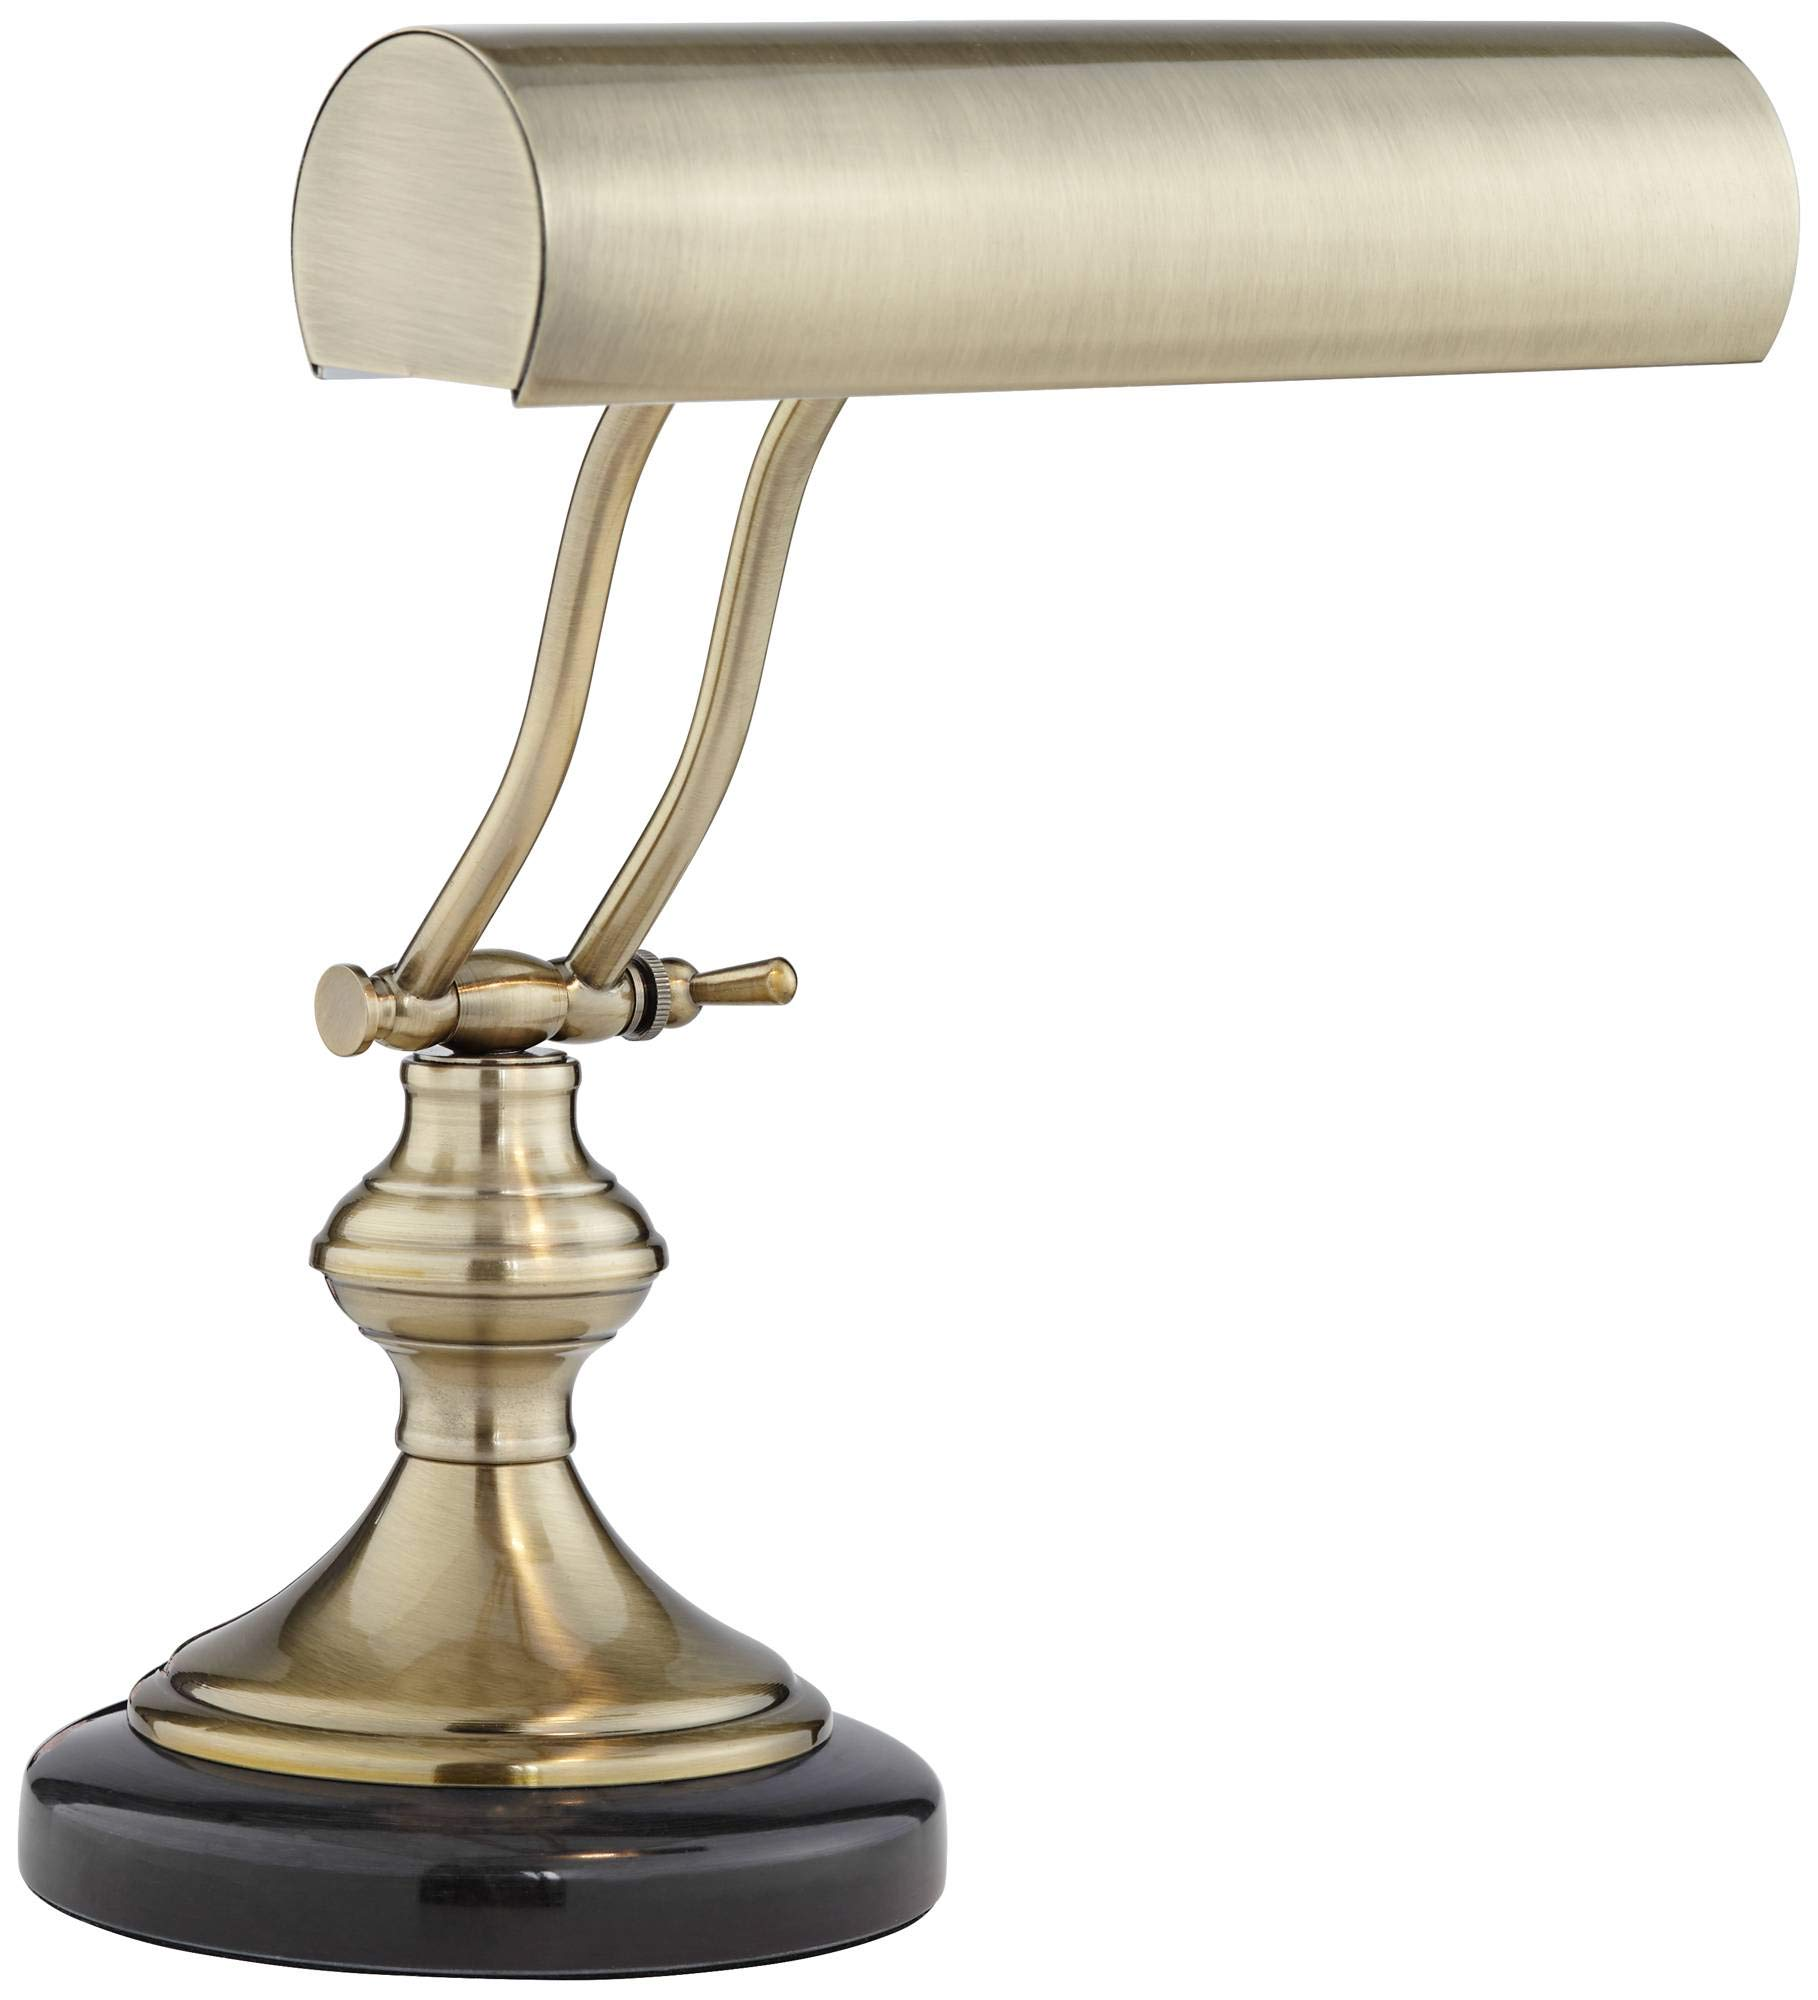 Traditional Piano Banker Desk Lamp LED Adjustable Black Marble Base Antique Brass Shade for Office Table - Regency Hill by Regency Hill